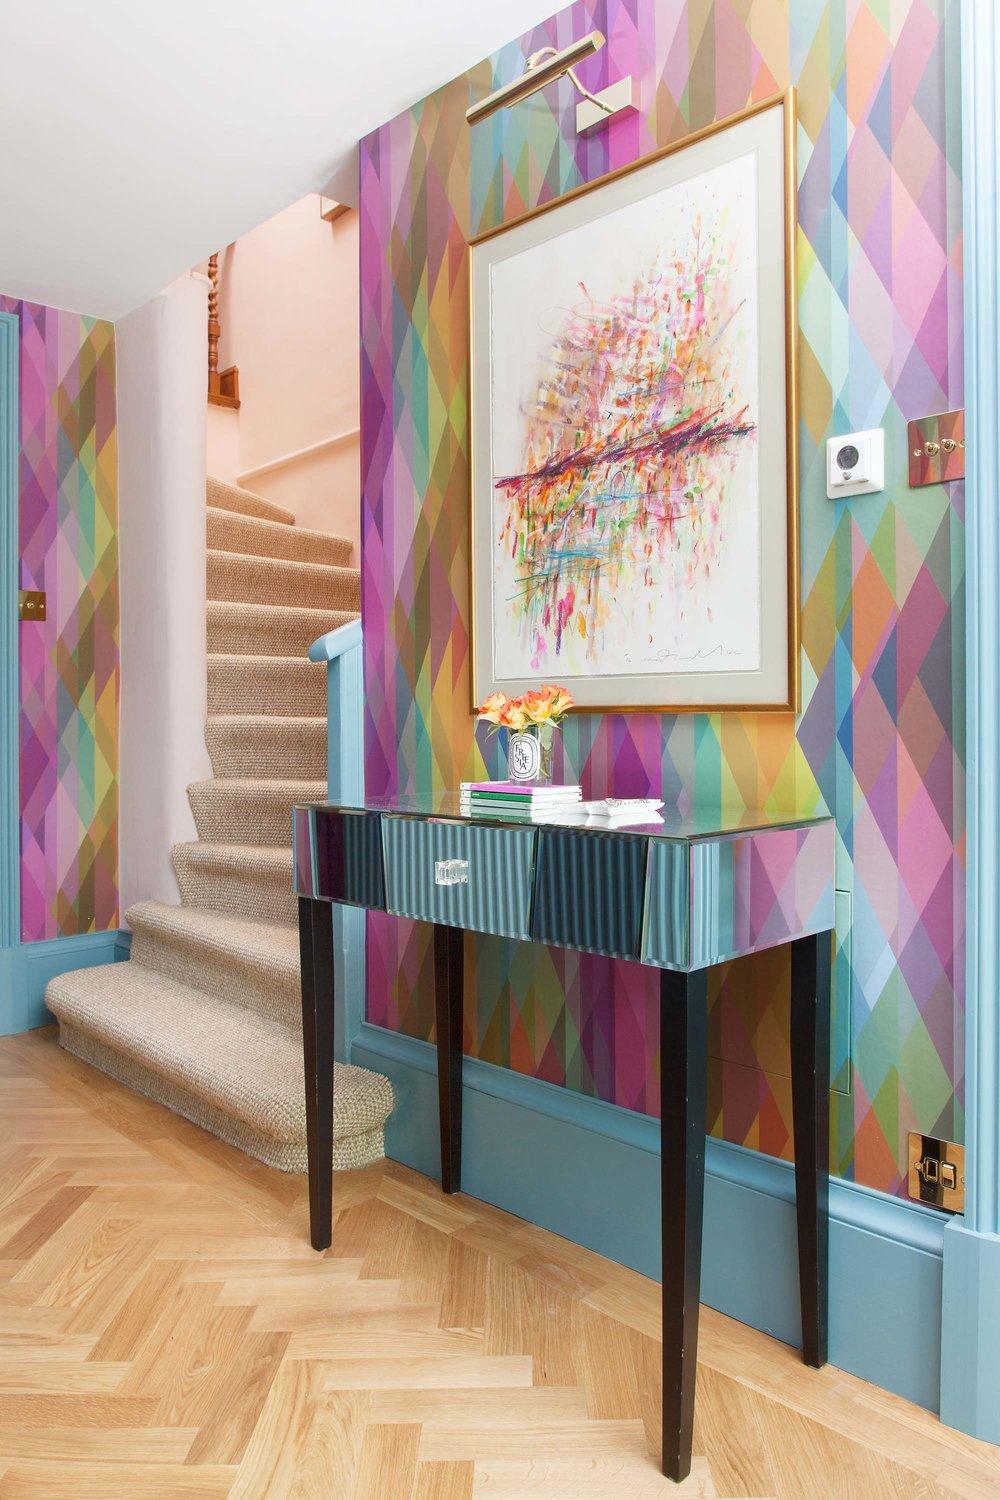 Should I paint my hallway beige for a quick sale?/Photo: Susie Lowe